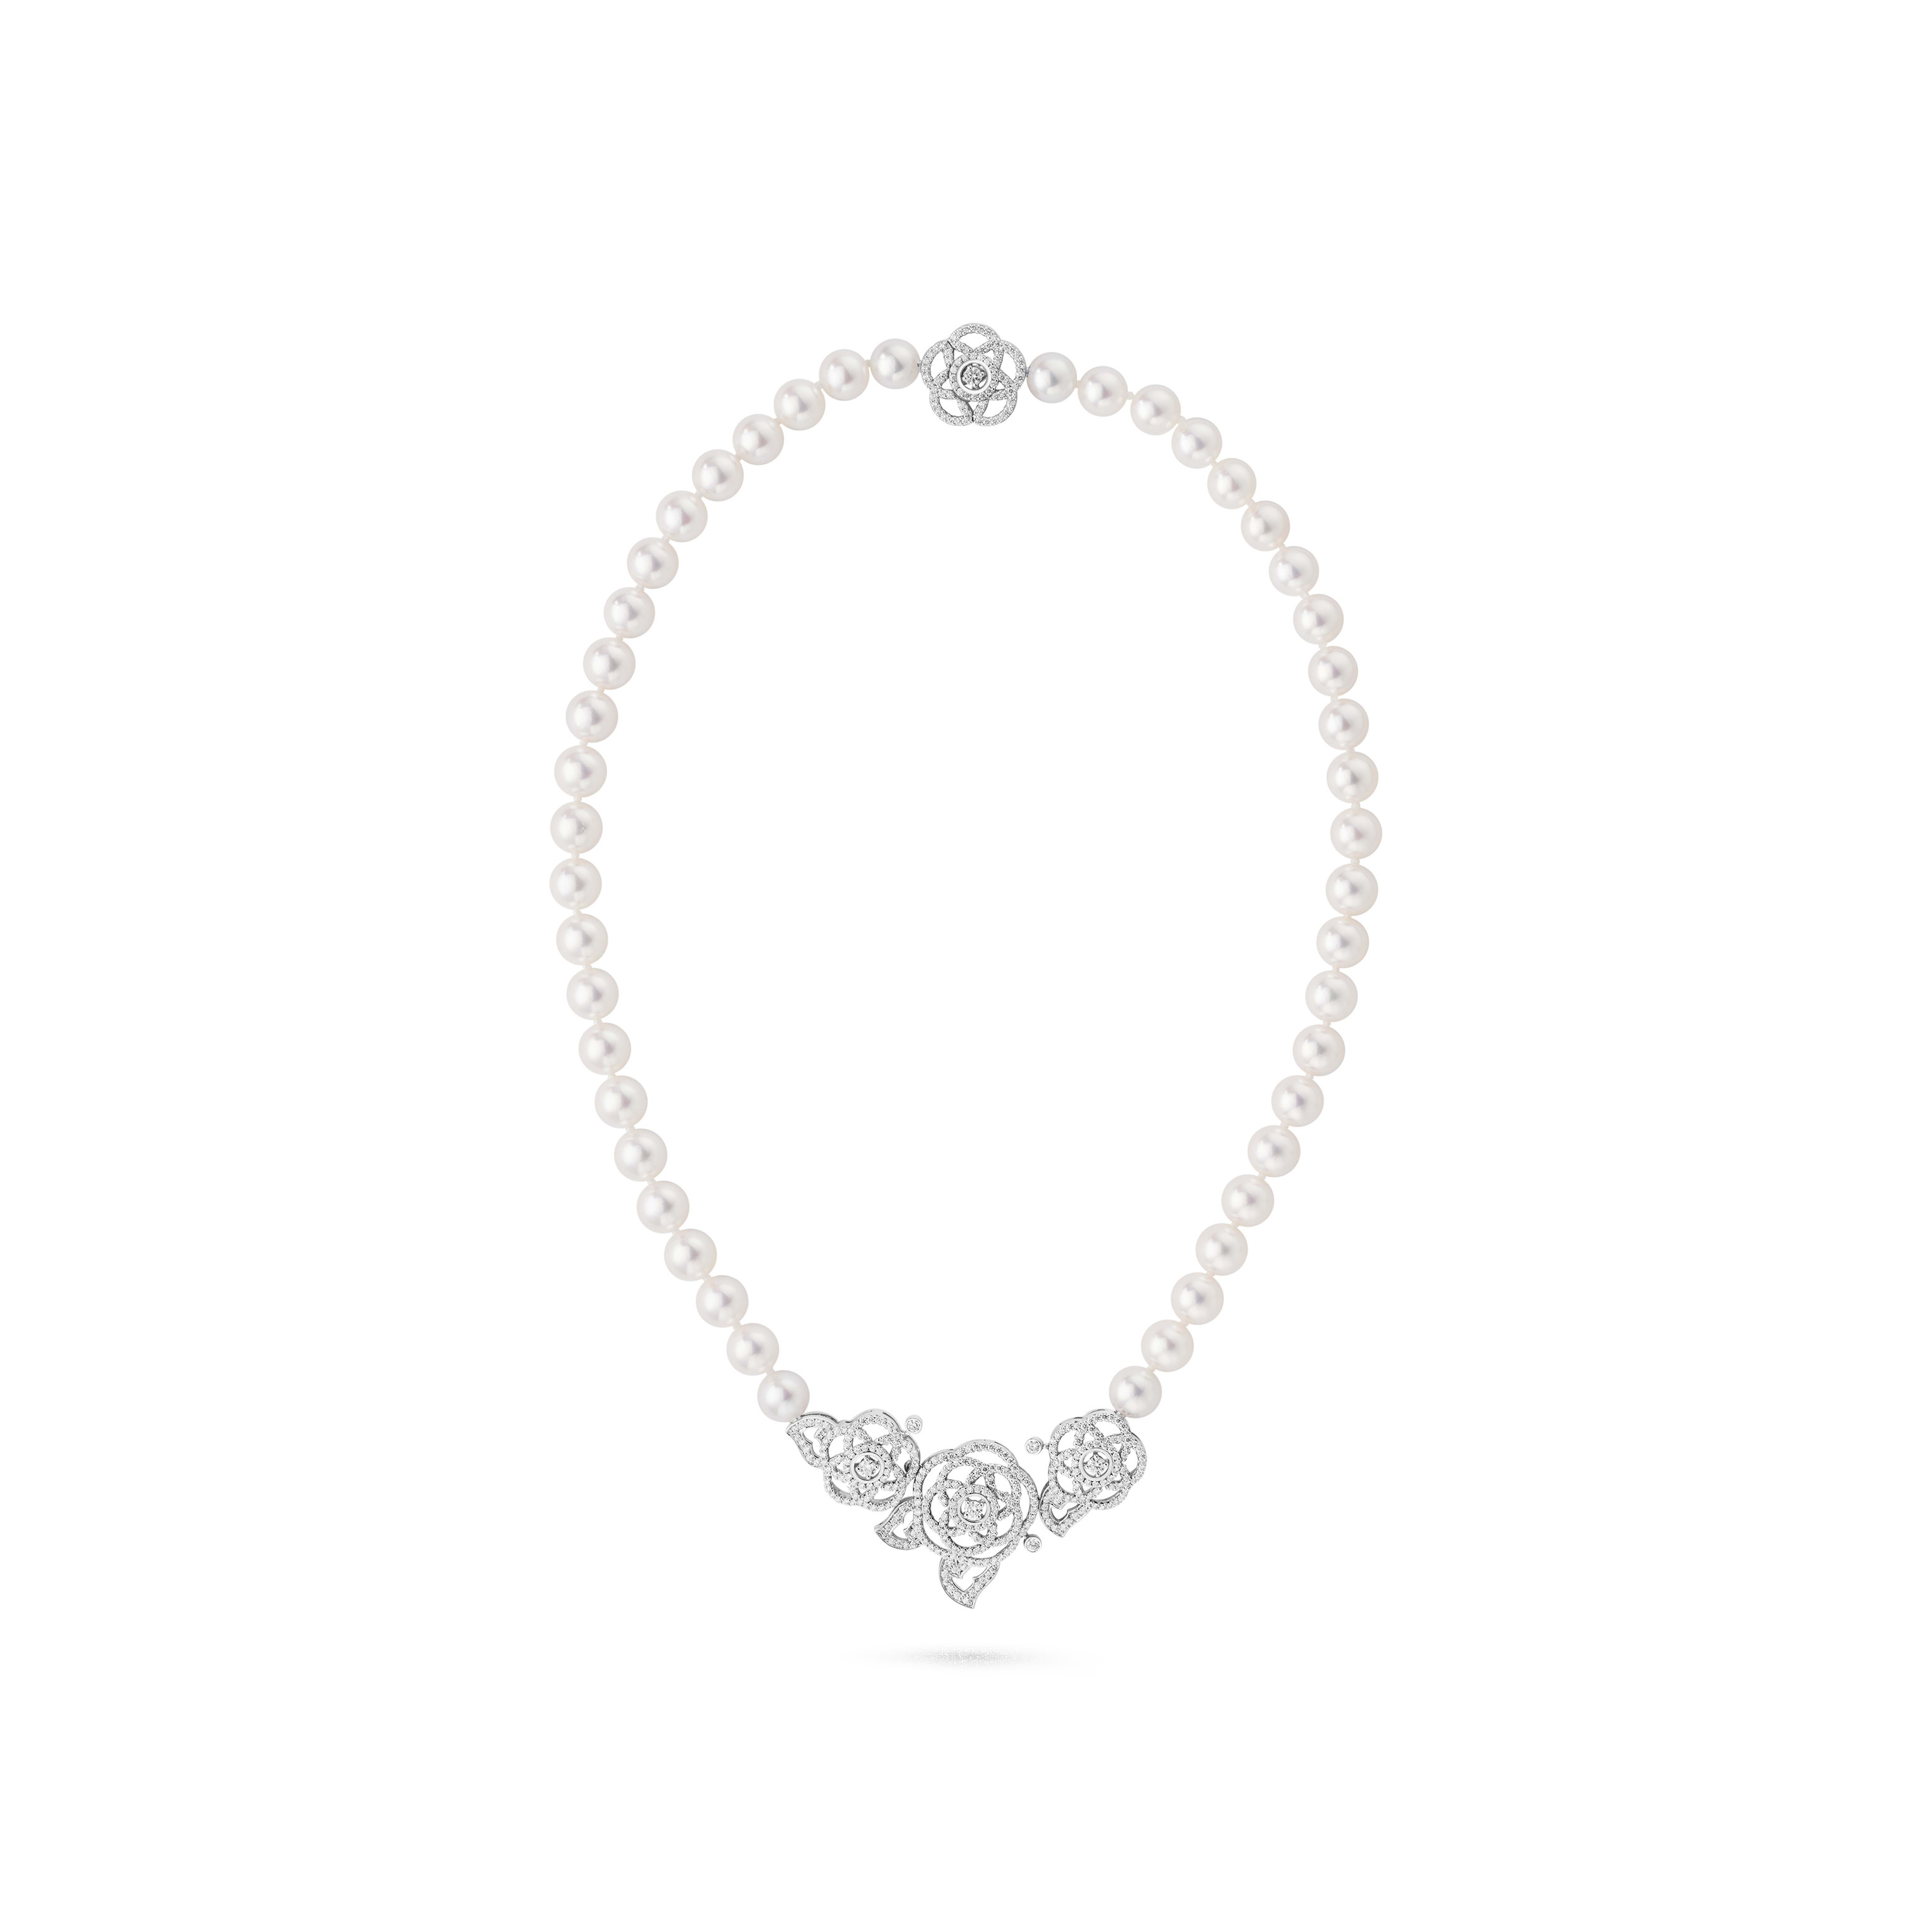 Camélia Brodé necklace - 18K white gold, diamonds, cultured pearls - CHANEL - Default view - see standard sized version